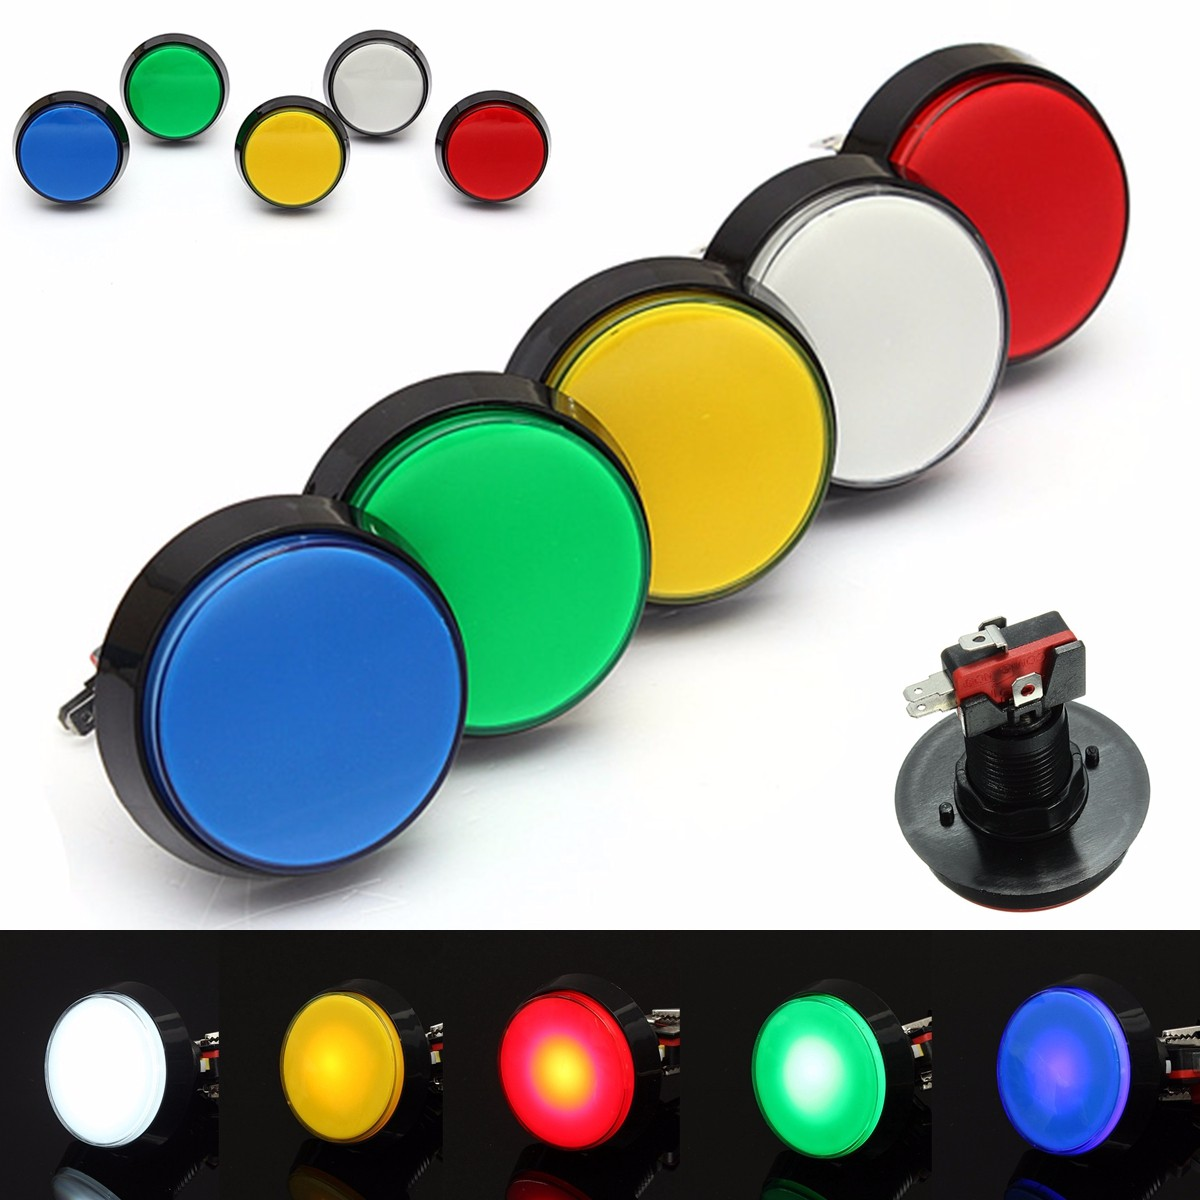 arcade-button-5-colors-led-light-lamp-60mm-45mm-big-round-arcade-video-game-player-push-button-switch